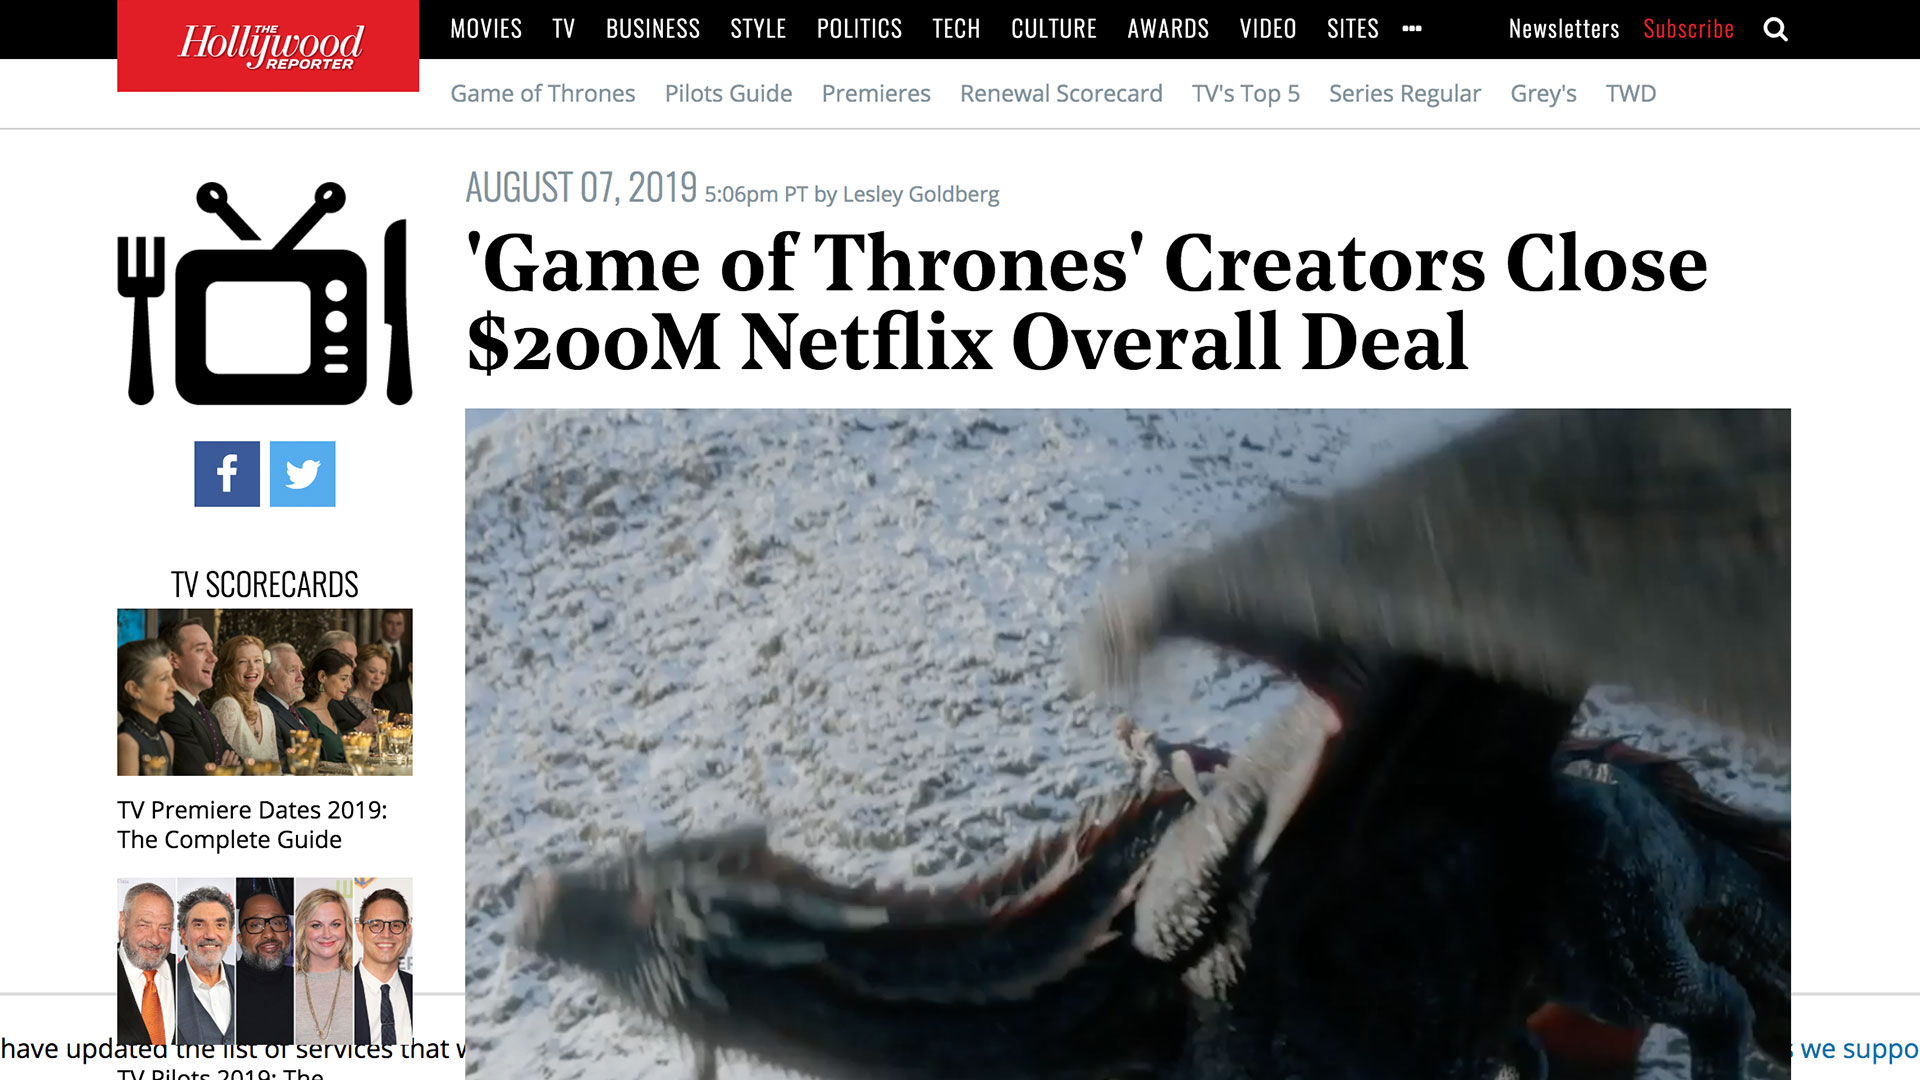 Fairness Rocks News 'Game of Thrones' Creators Close $200M Netflix Overall Deal